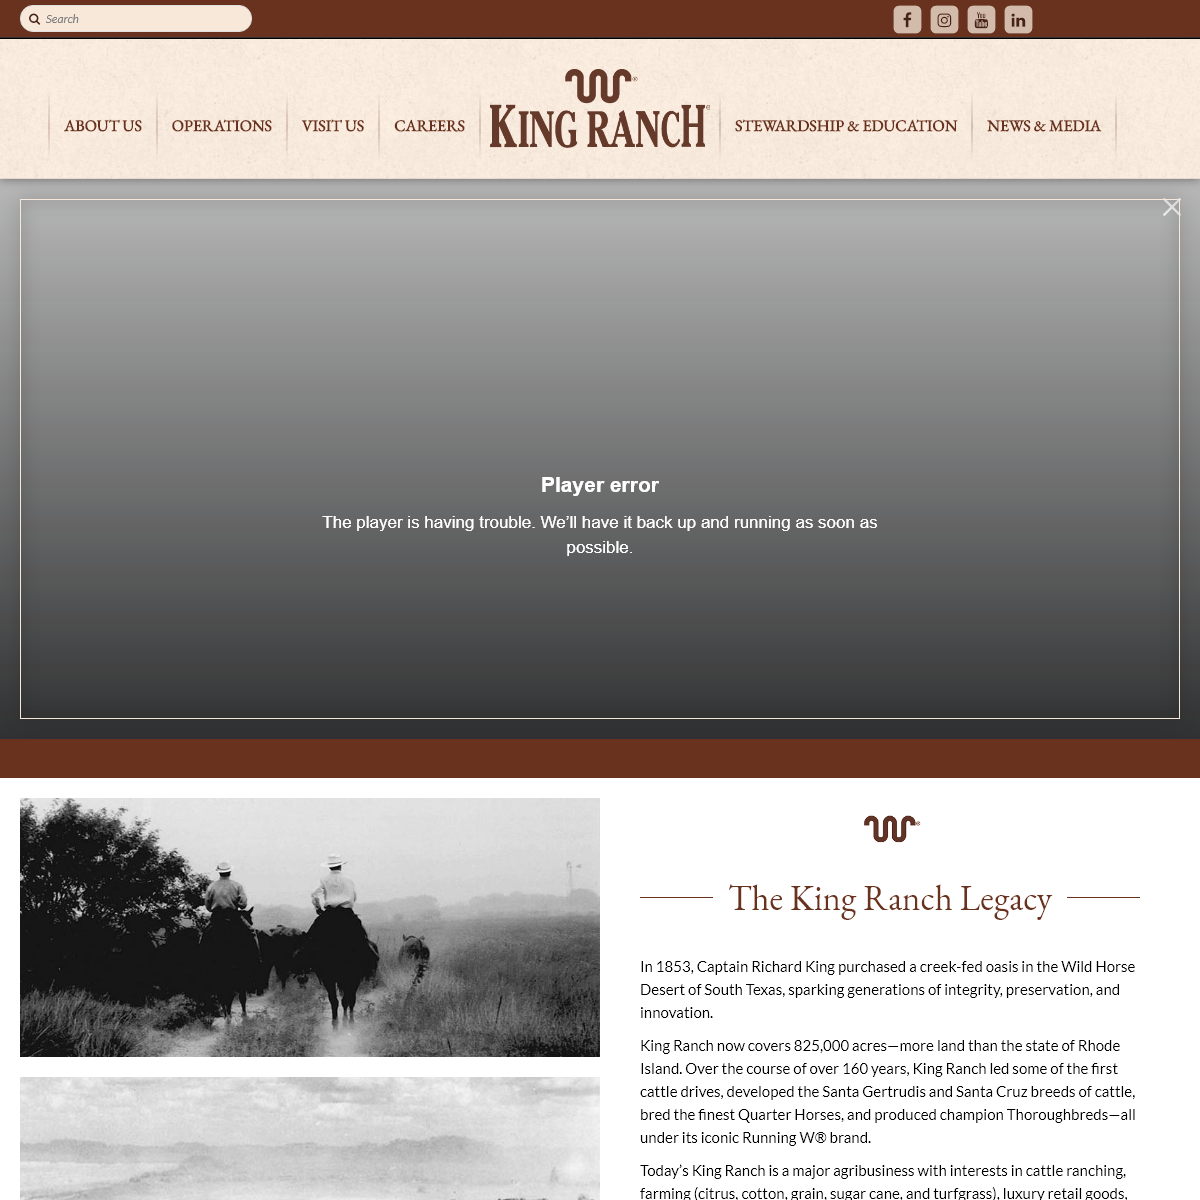 The King Ranch Legacy - King Ranch